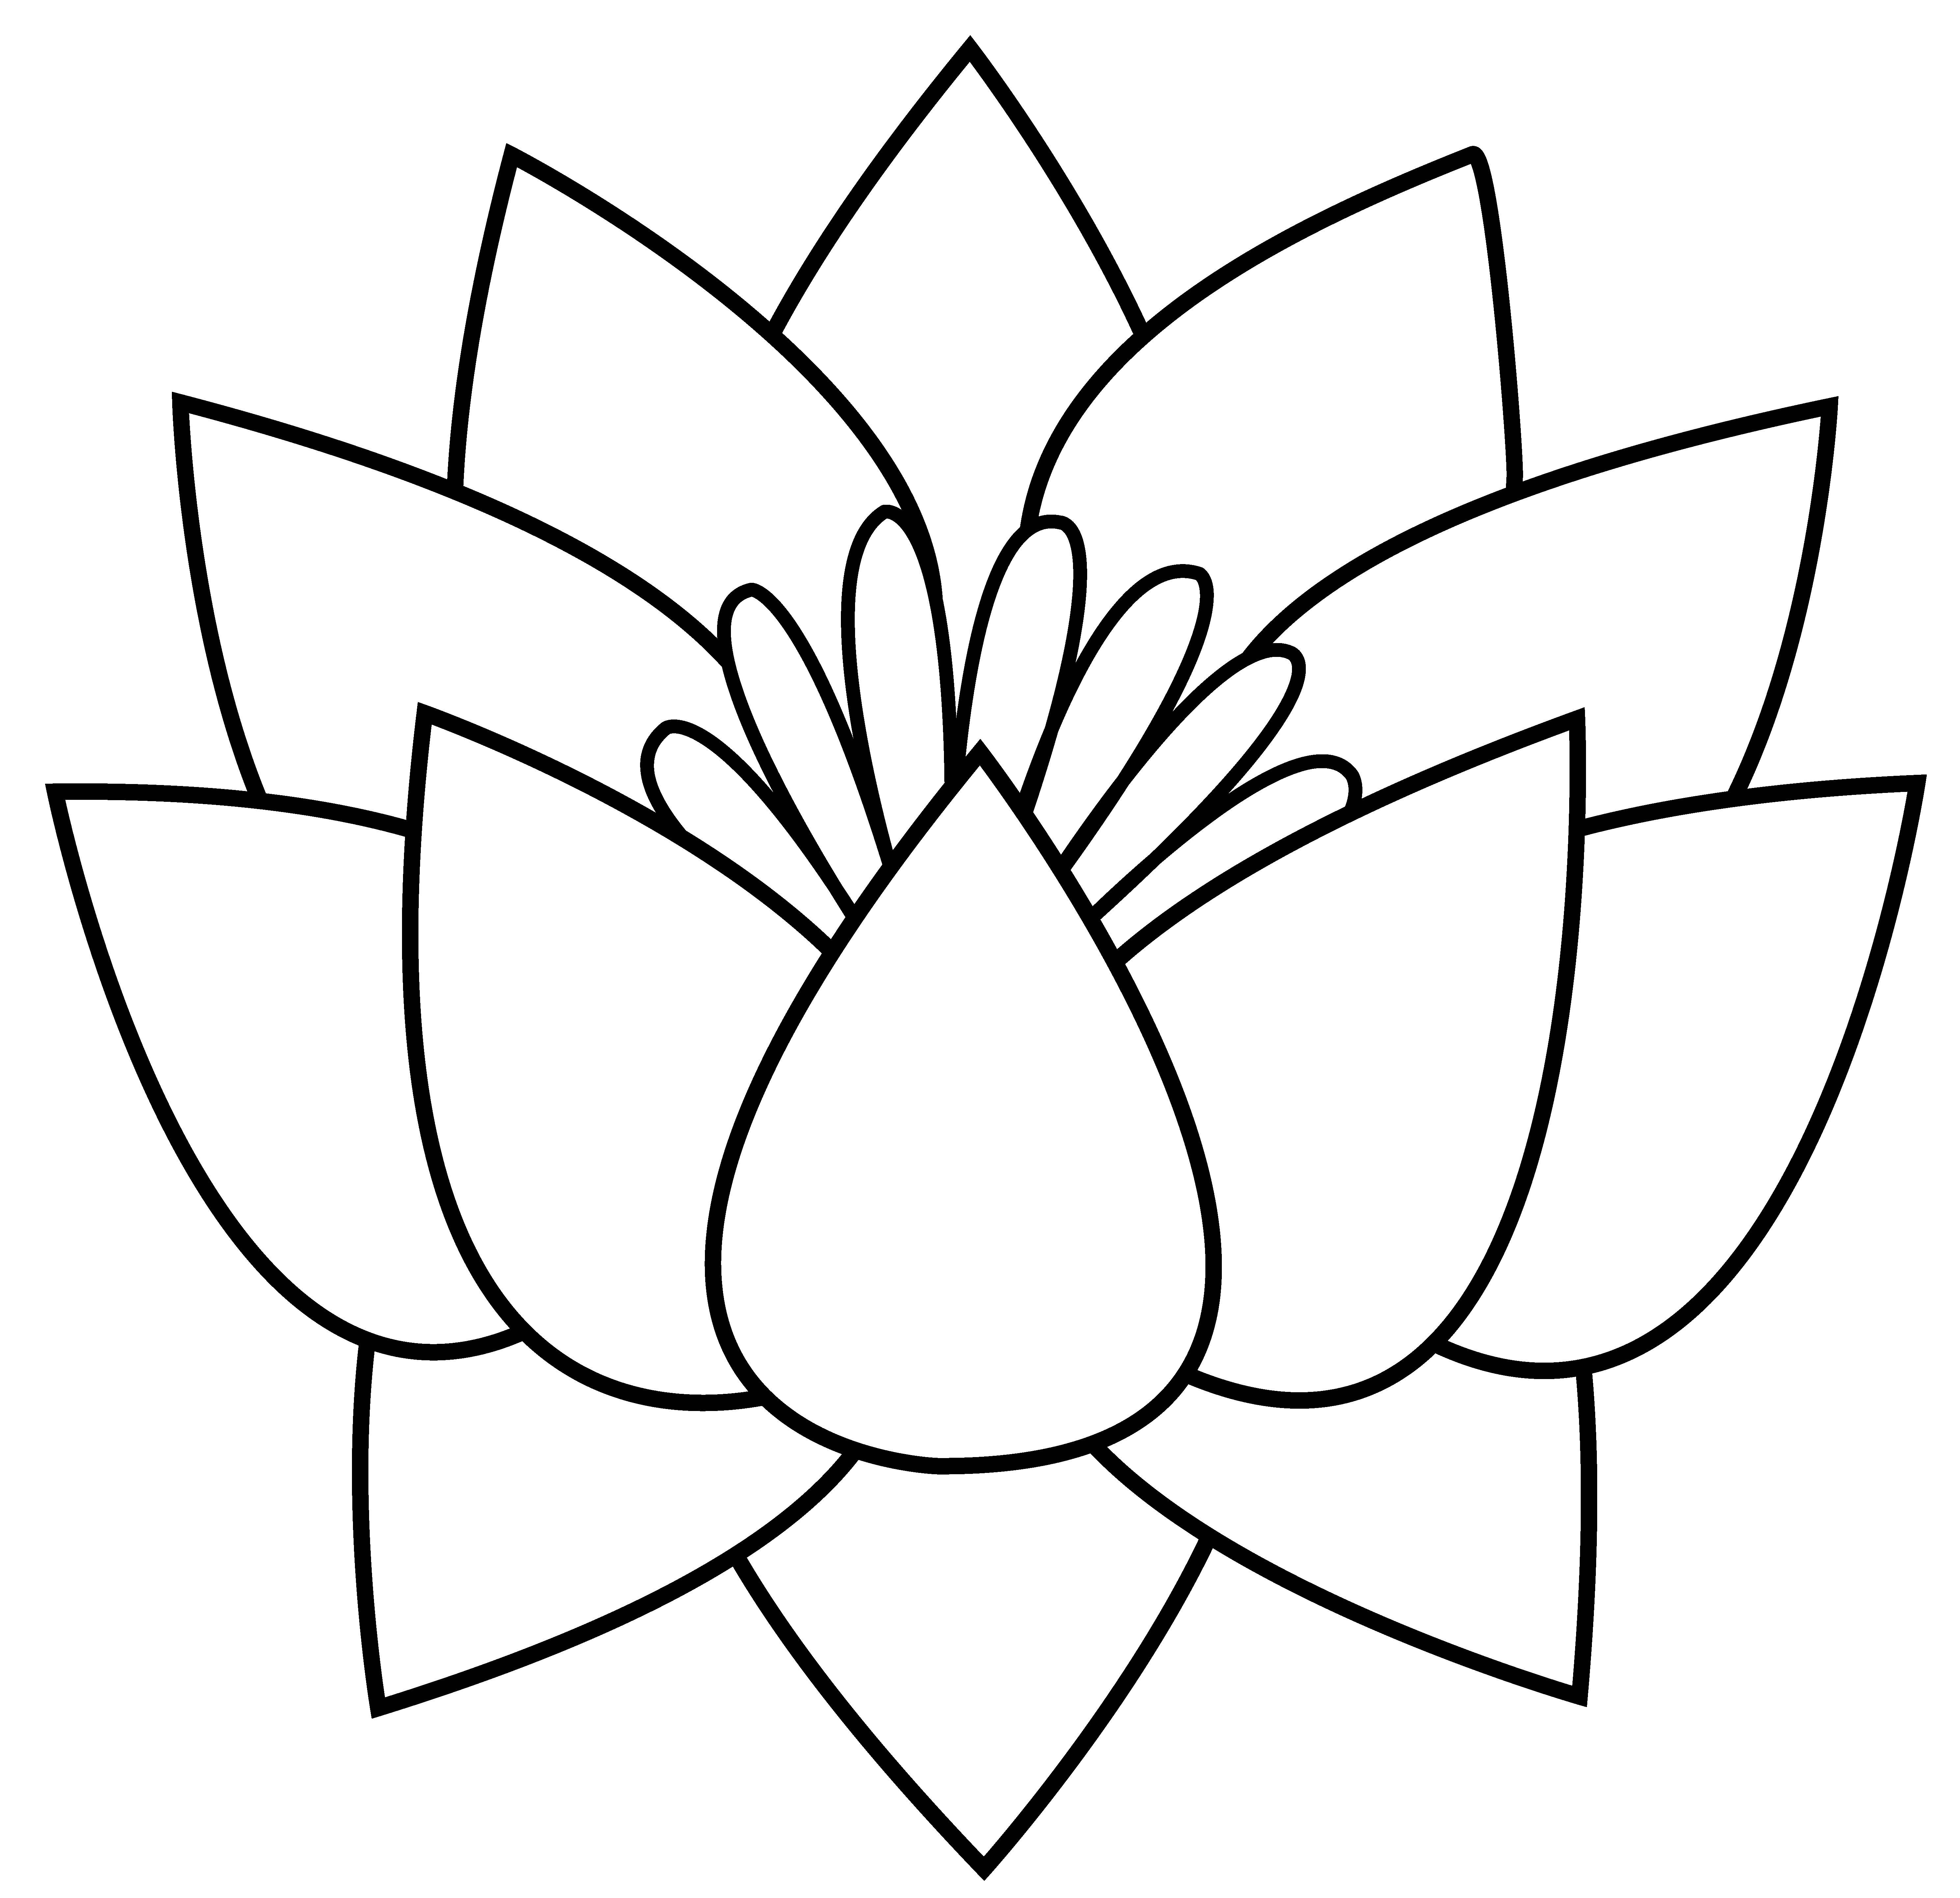 5953x5764 Celestial Drawing Lotus Flower Transparent Png Clipart Free